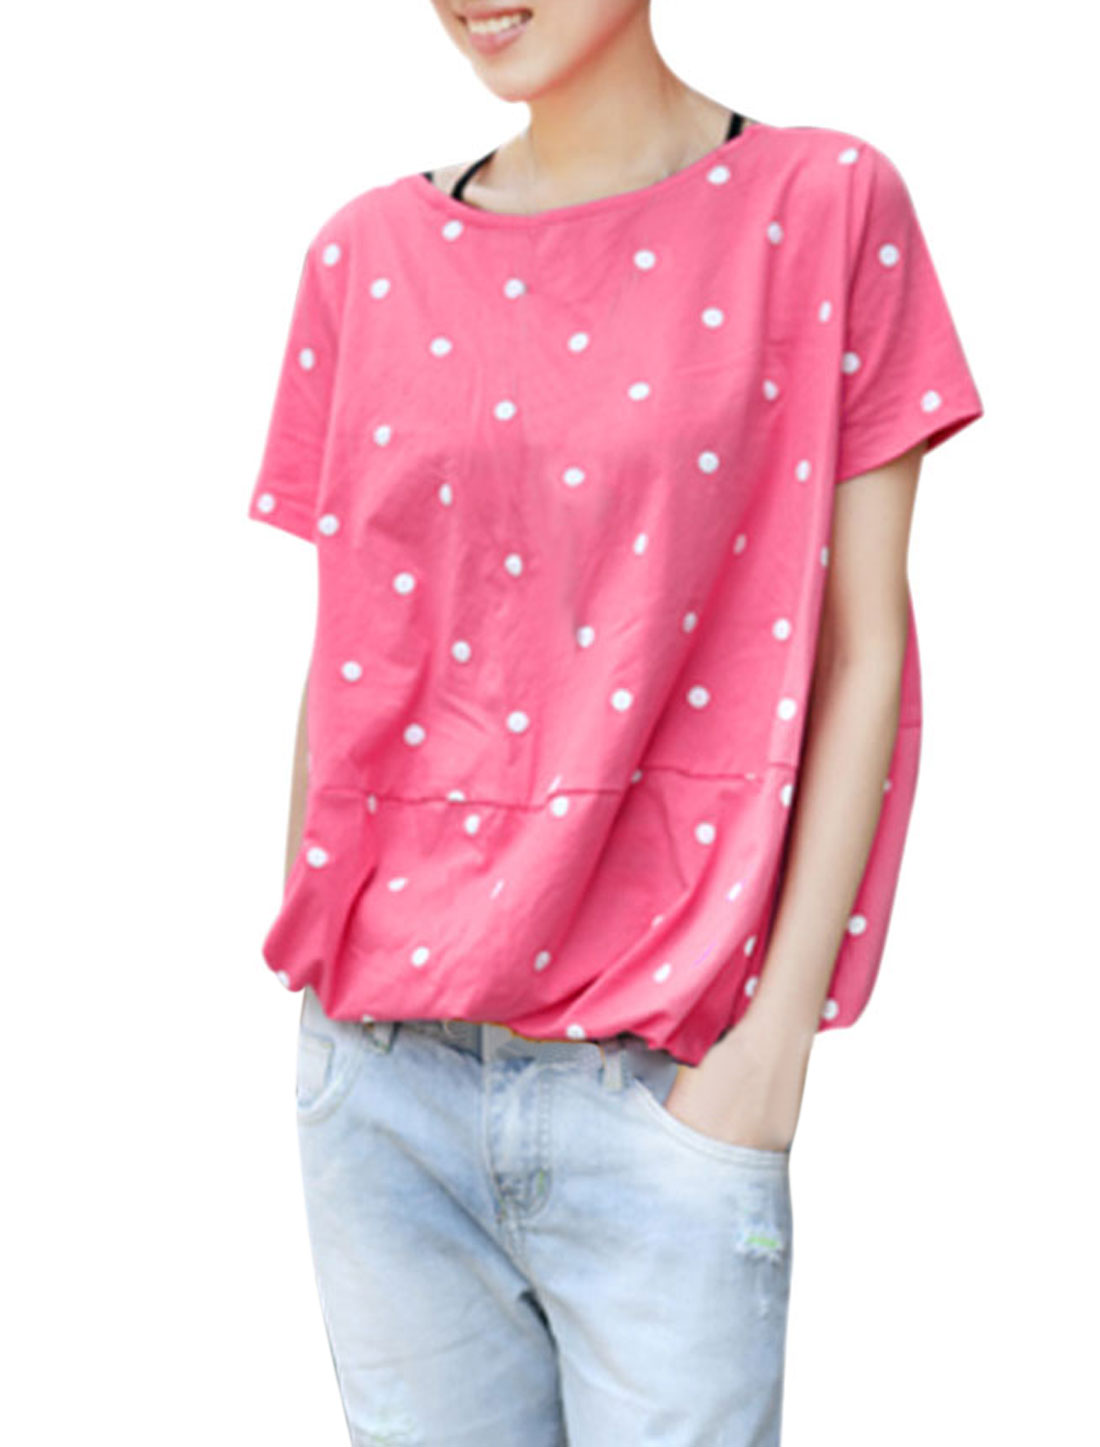 Lady Summer Scoop Neck Dotted Decor Pink Blouse S